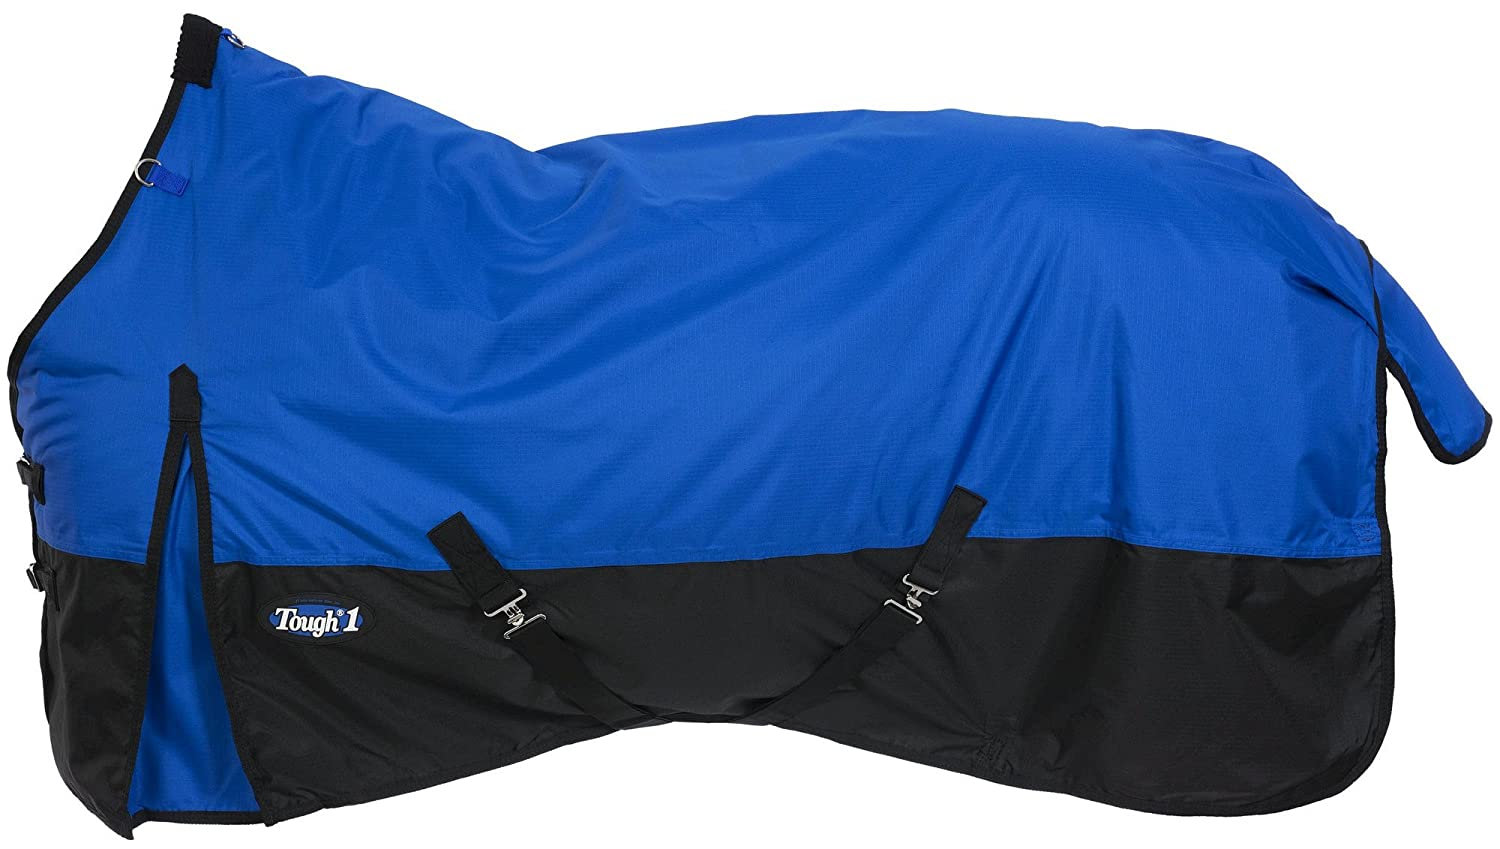 Tough 1 600 Denier Turnout Blanket JT International